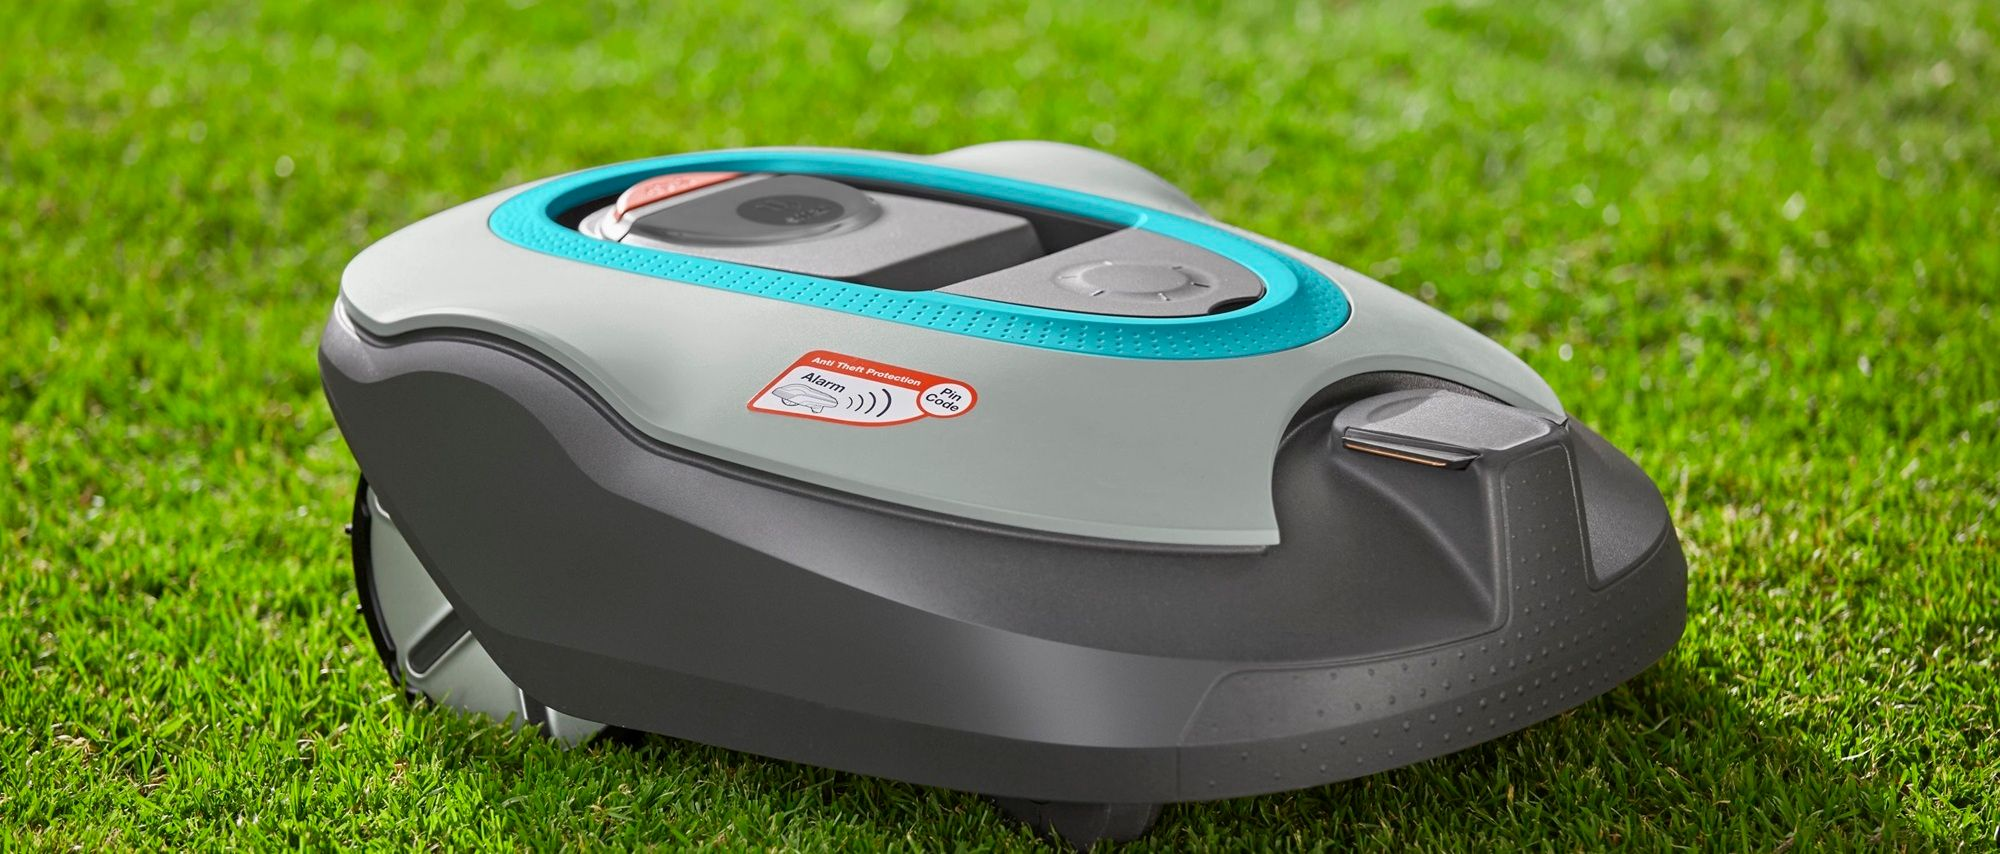 Gardena R80LI Review (4069) - Gardena Robotic Lawn Mower